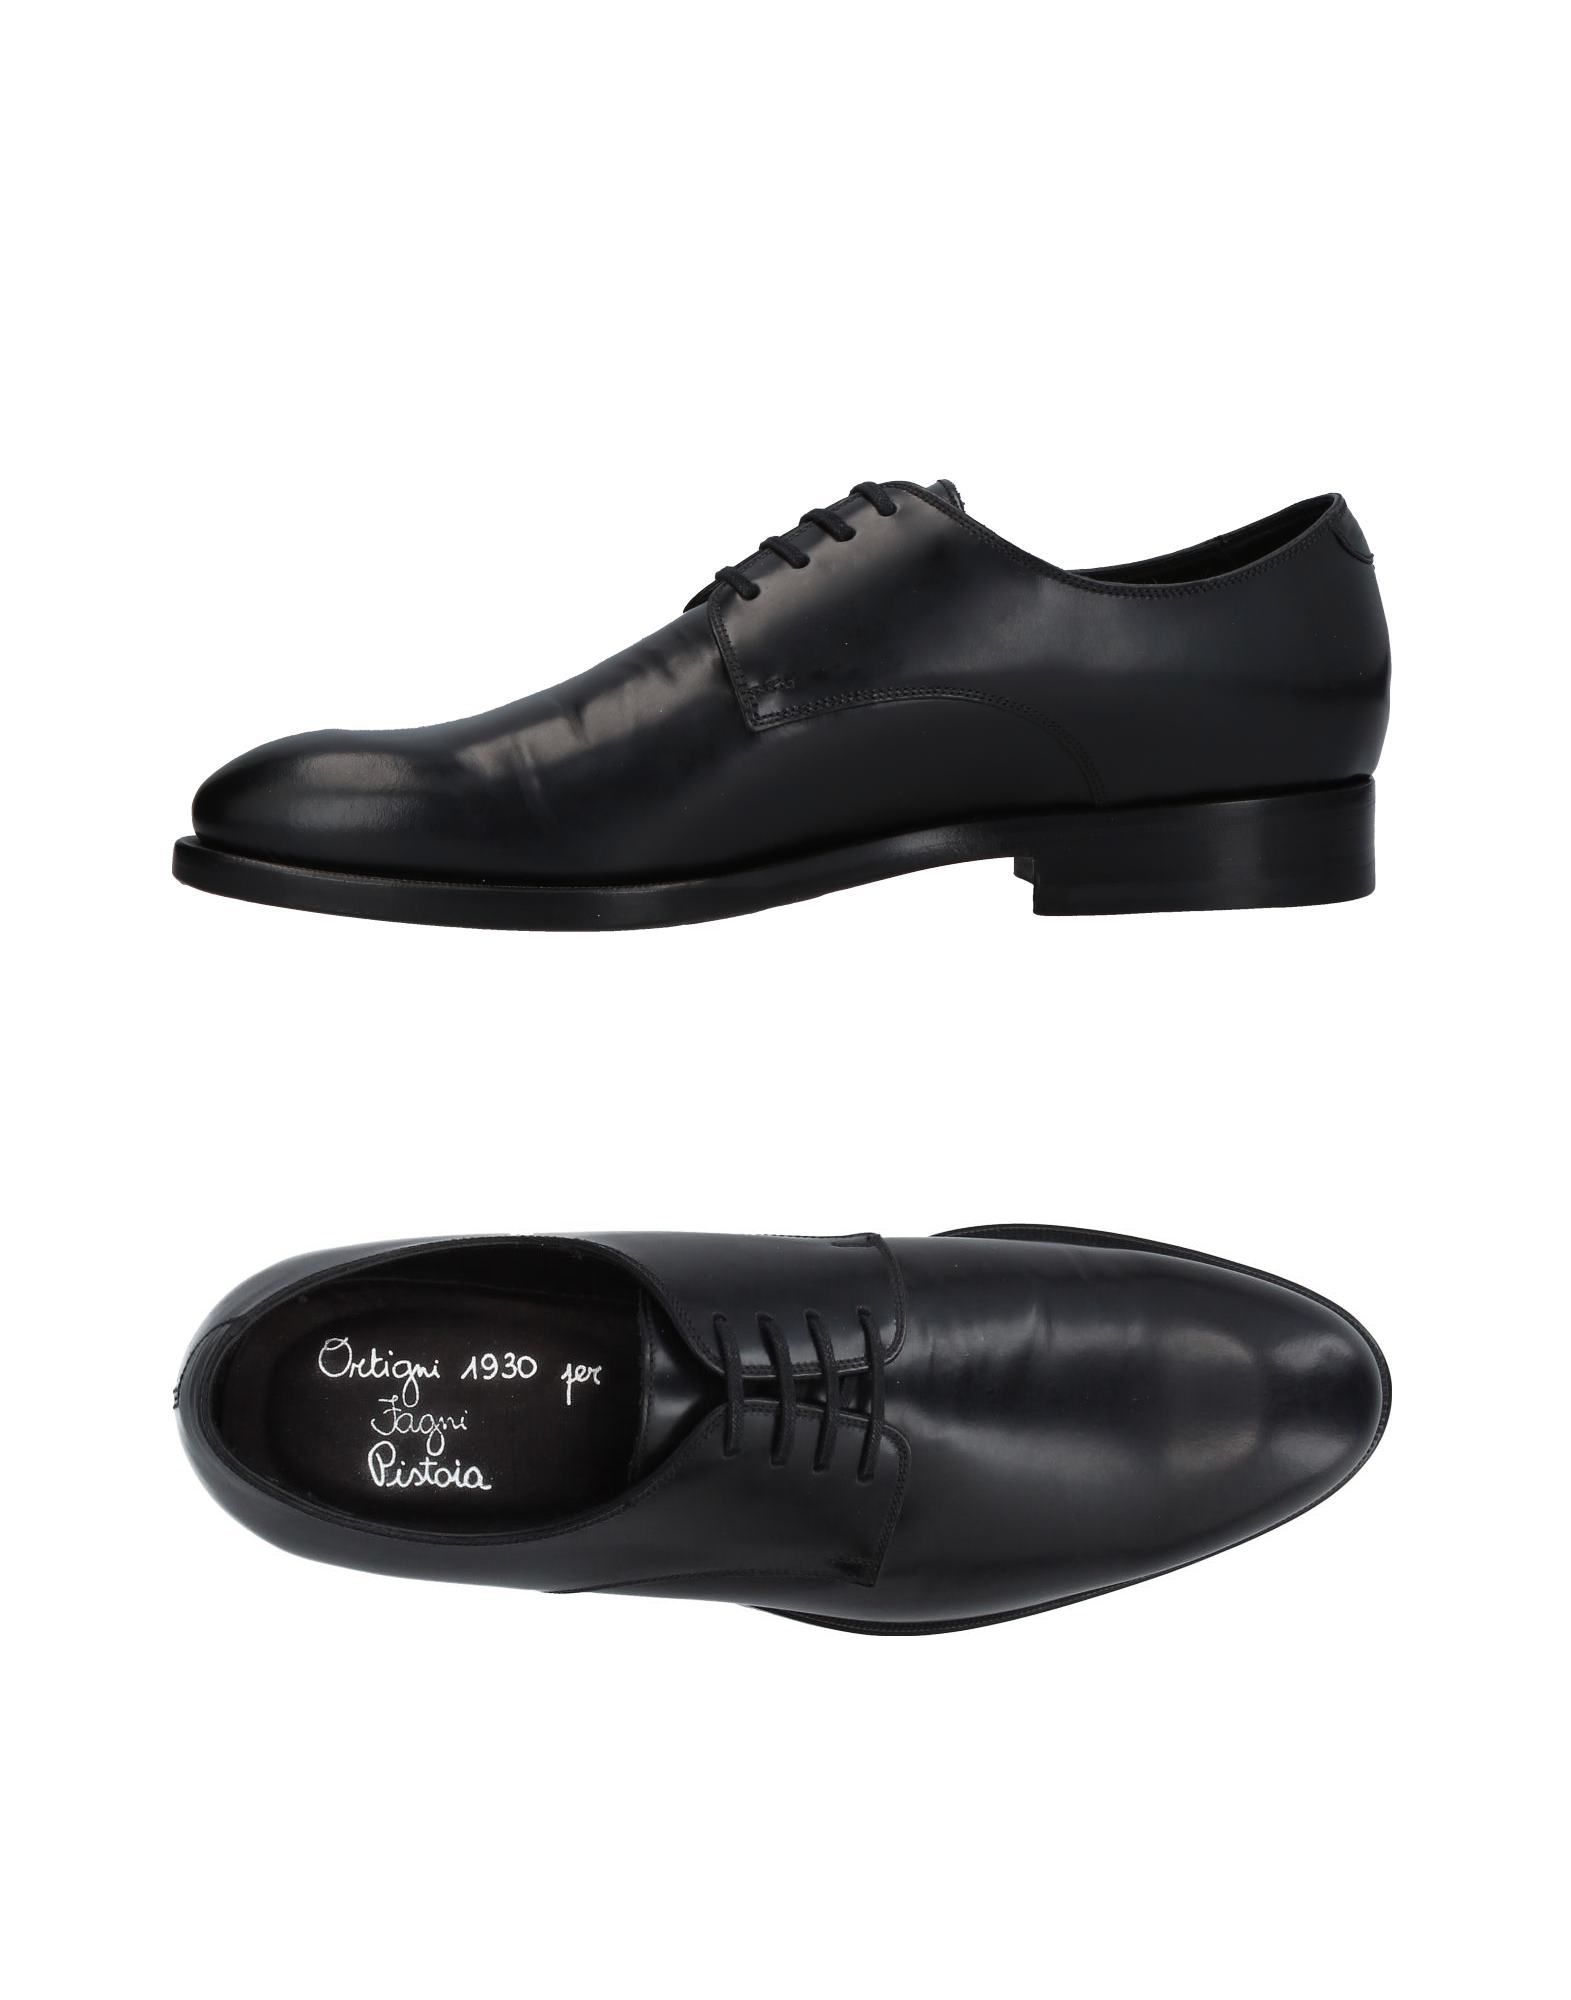 ORTIGNI Lace-Up Shoes in Black